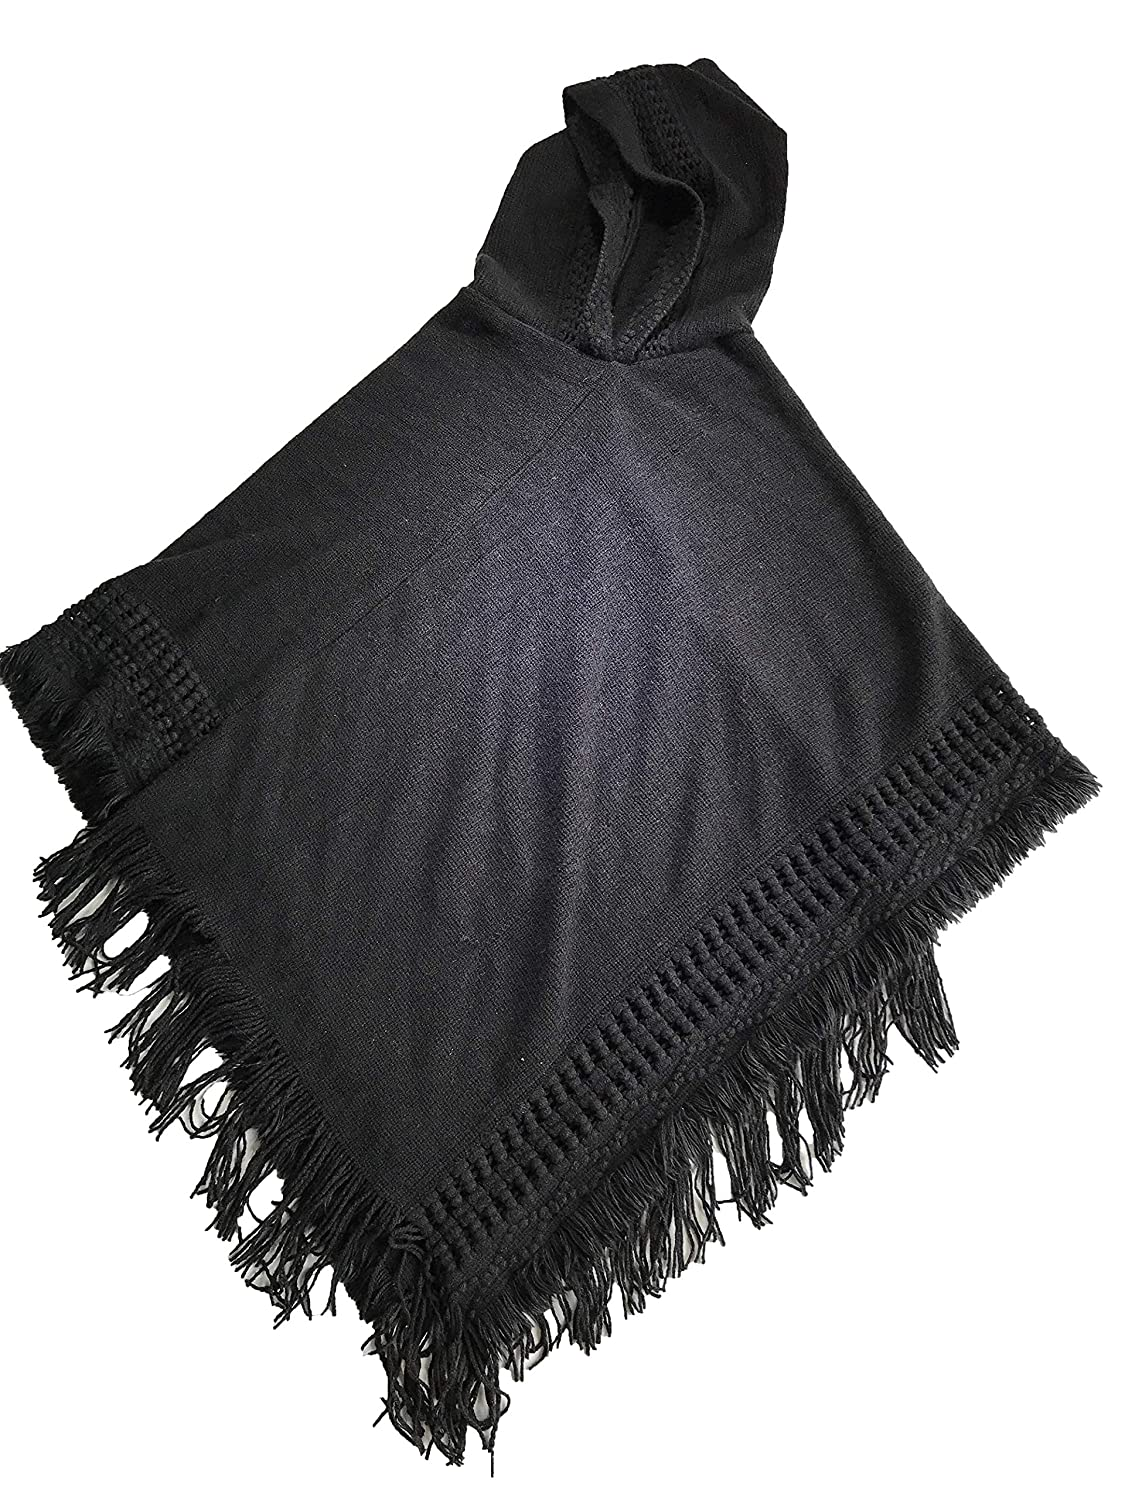 Autumn winter new knitted hooded cape shawl monochrome pullover cape